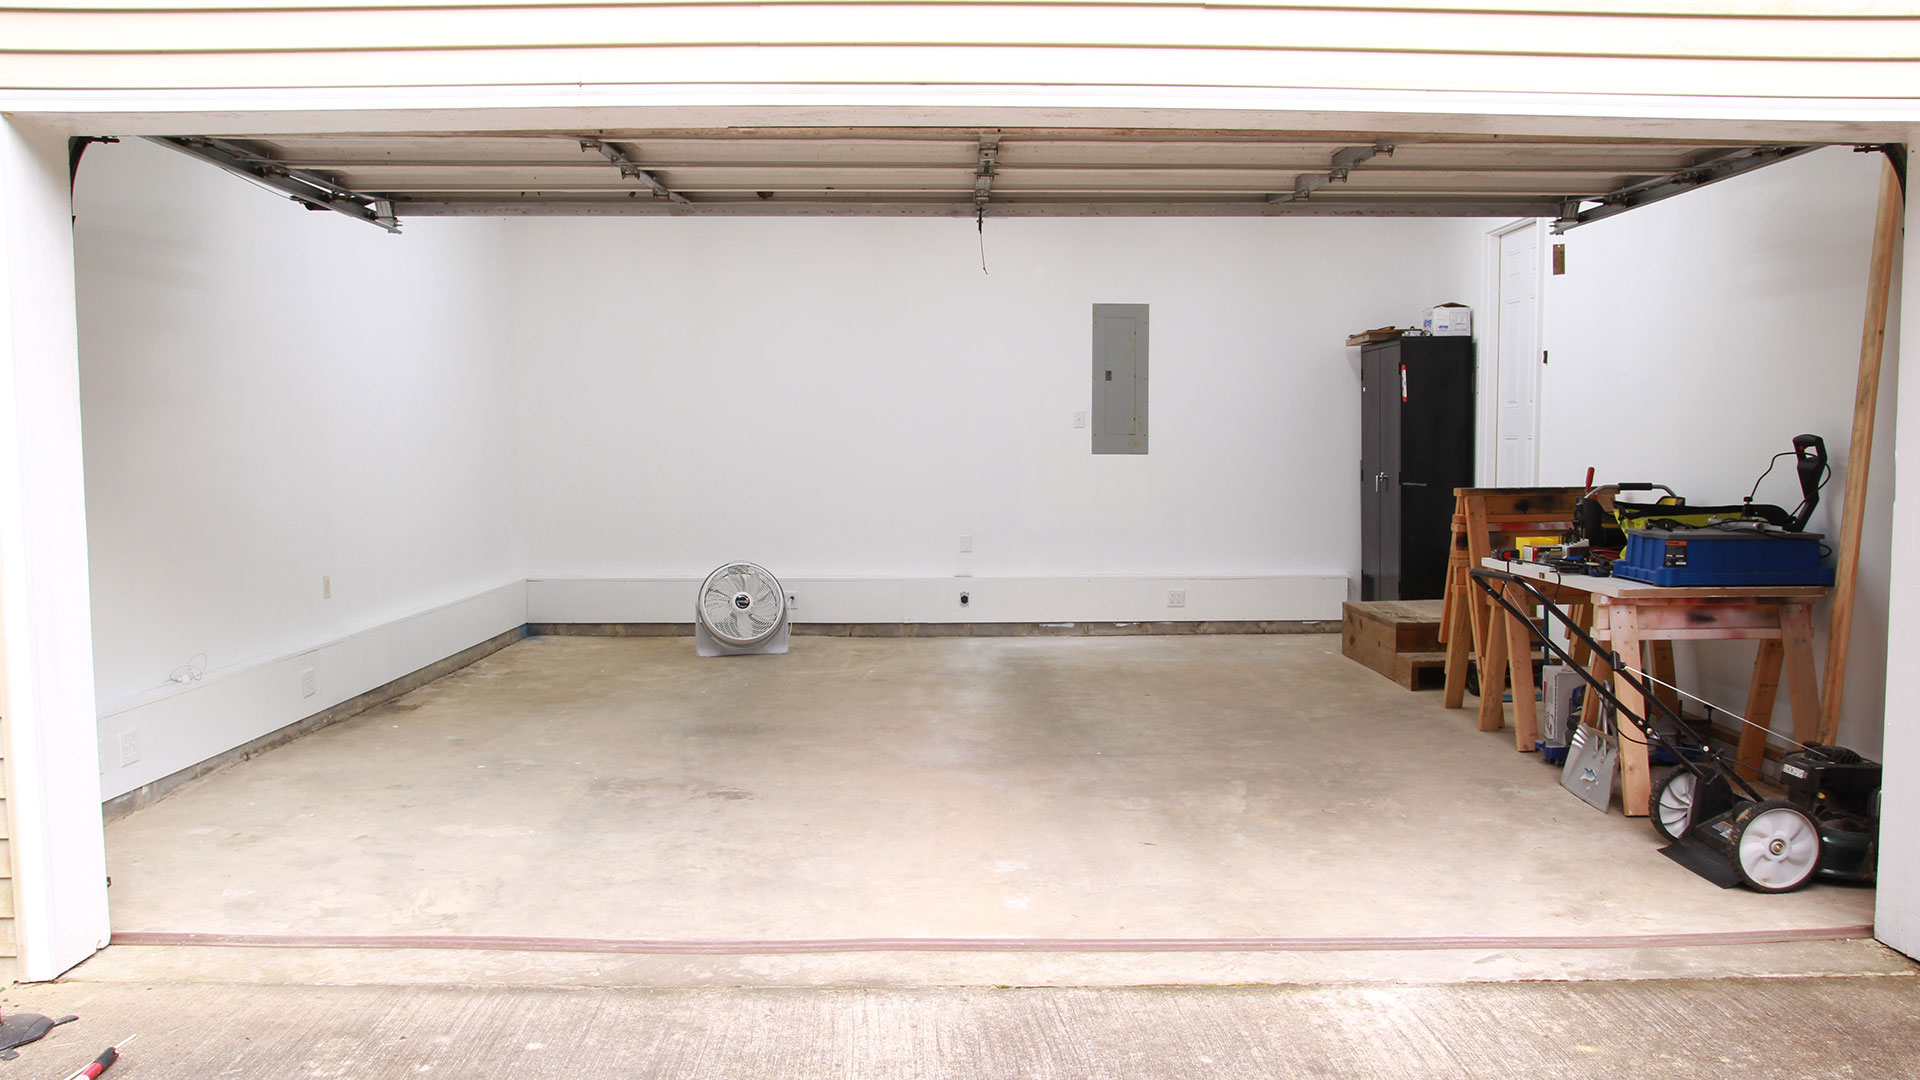 hight resolution of  i gave the walls a fresh coat of white paint and ran new electrical wires for the shop inside a long box along the bottom of the left and rear walls